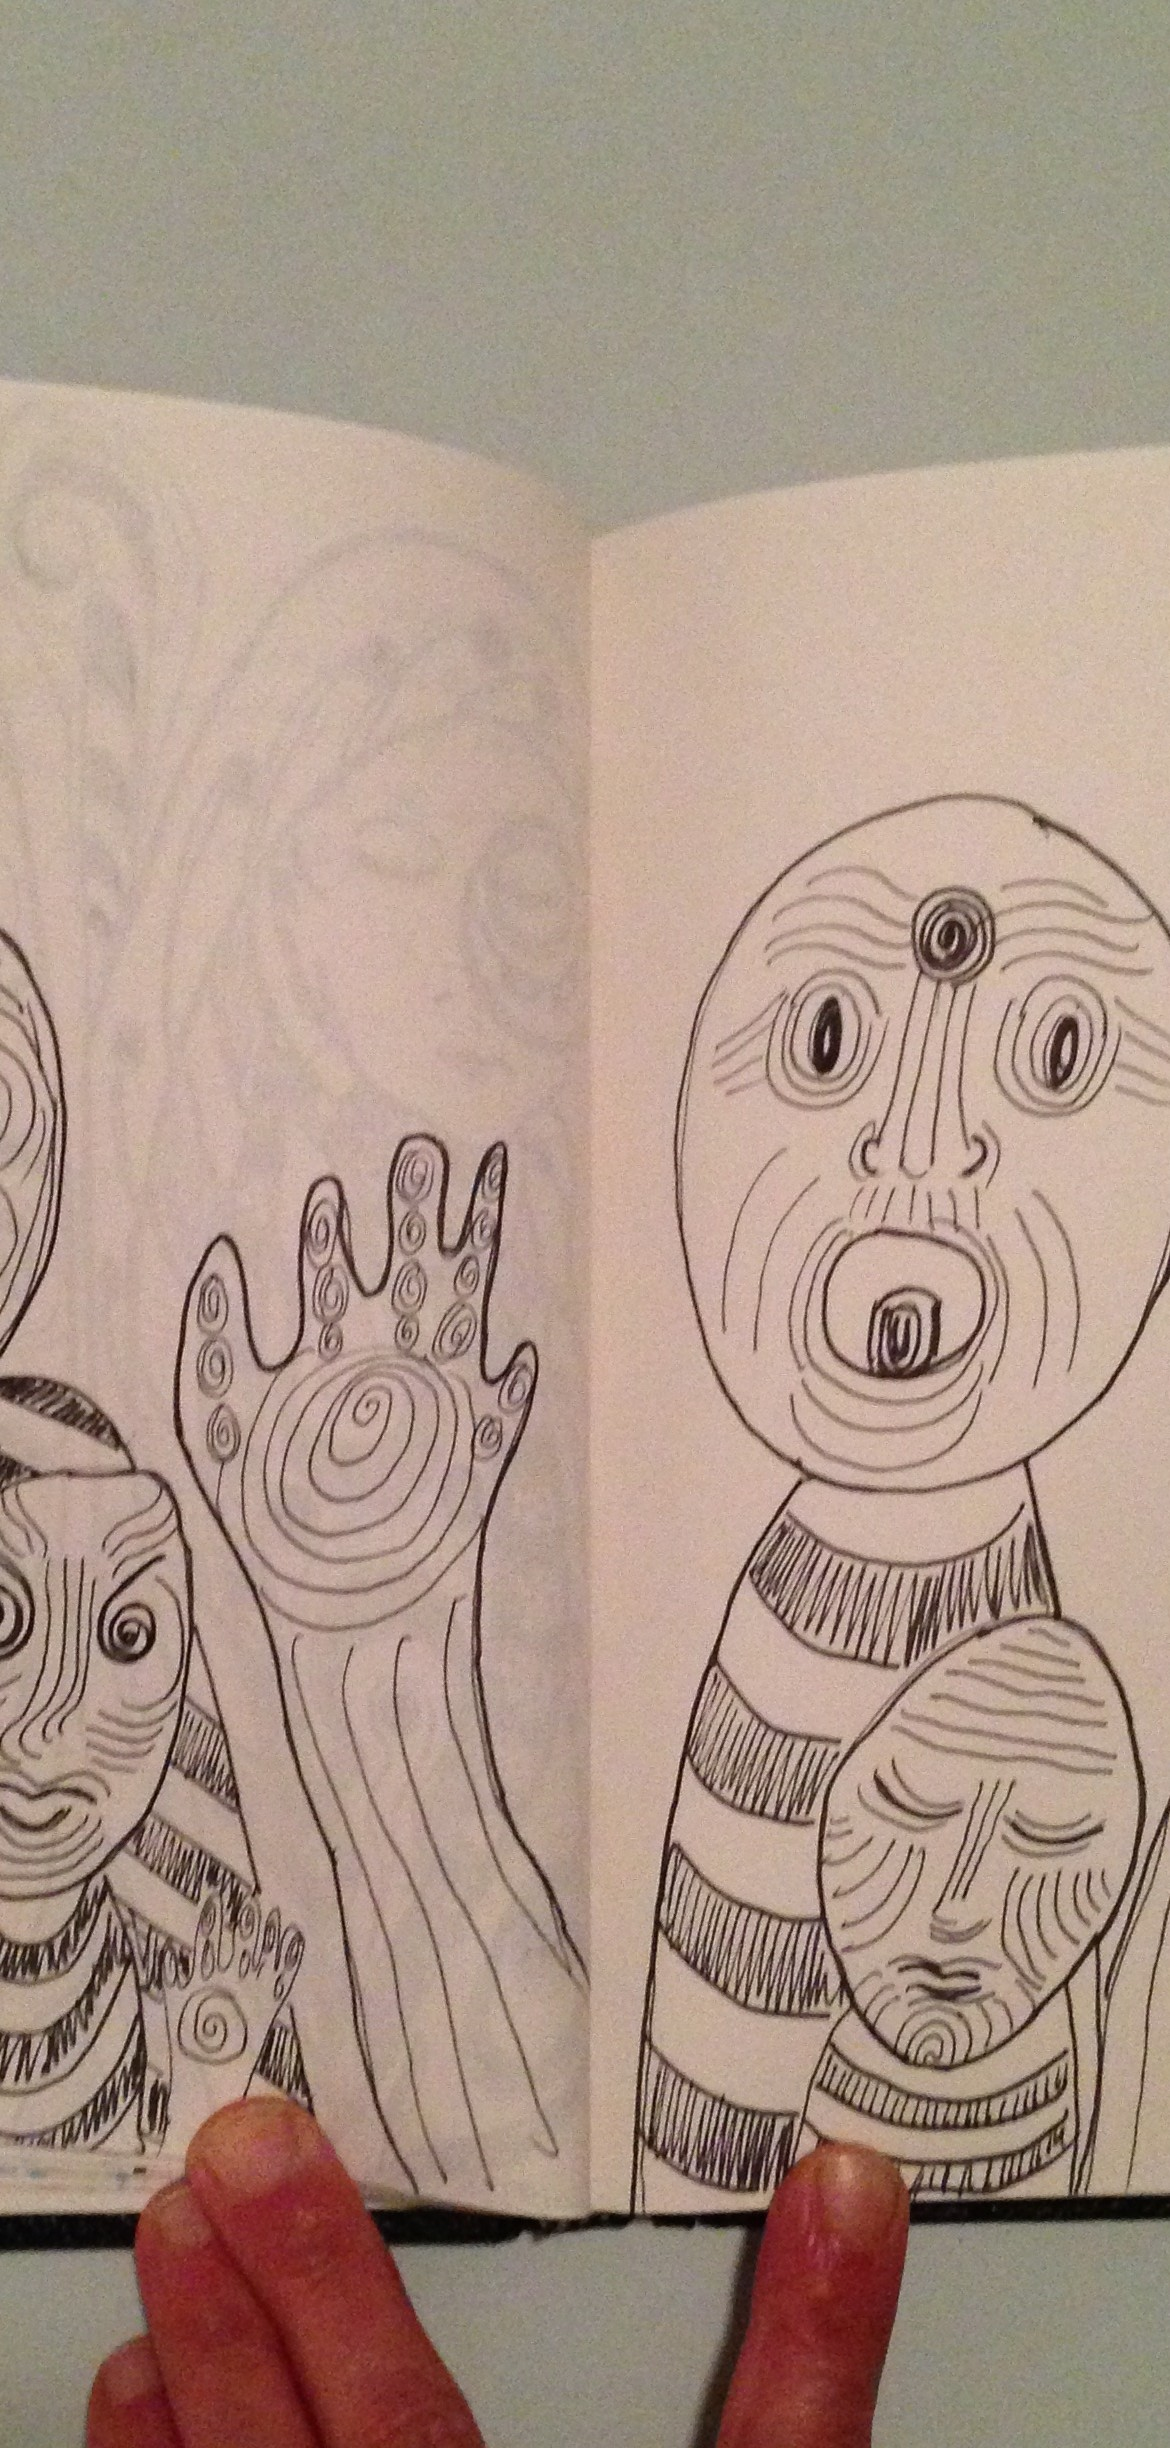 #DoodleADay Challenge Day 10 at ArtTherapist.ca unfinished